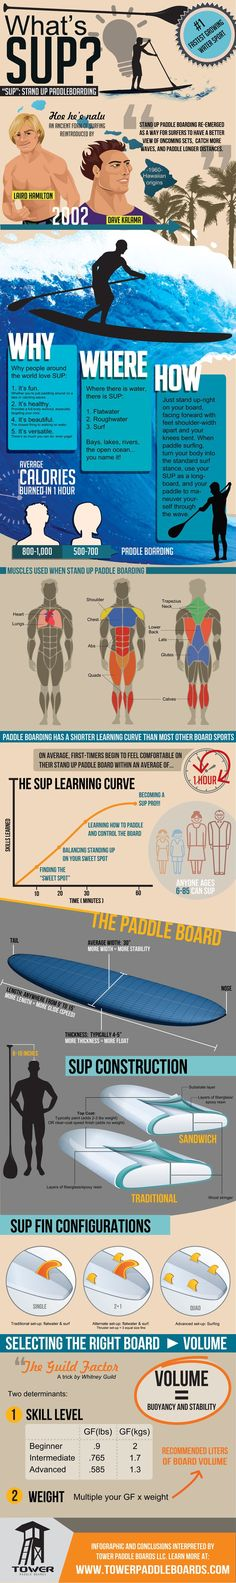 Stand Up Paddle Board Infographic for SUP